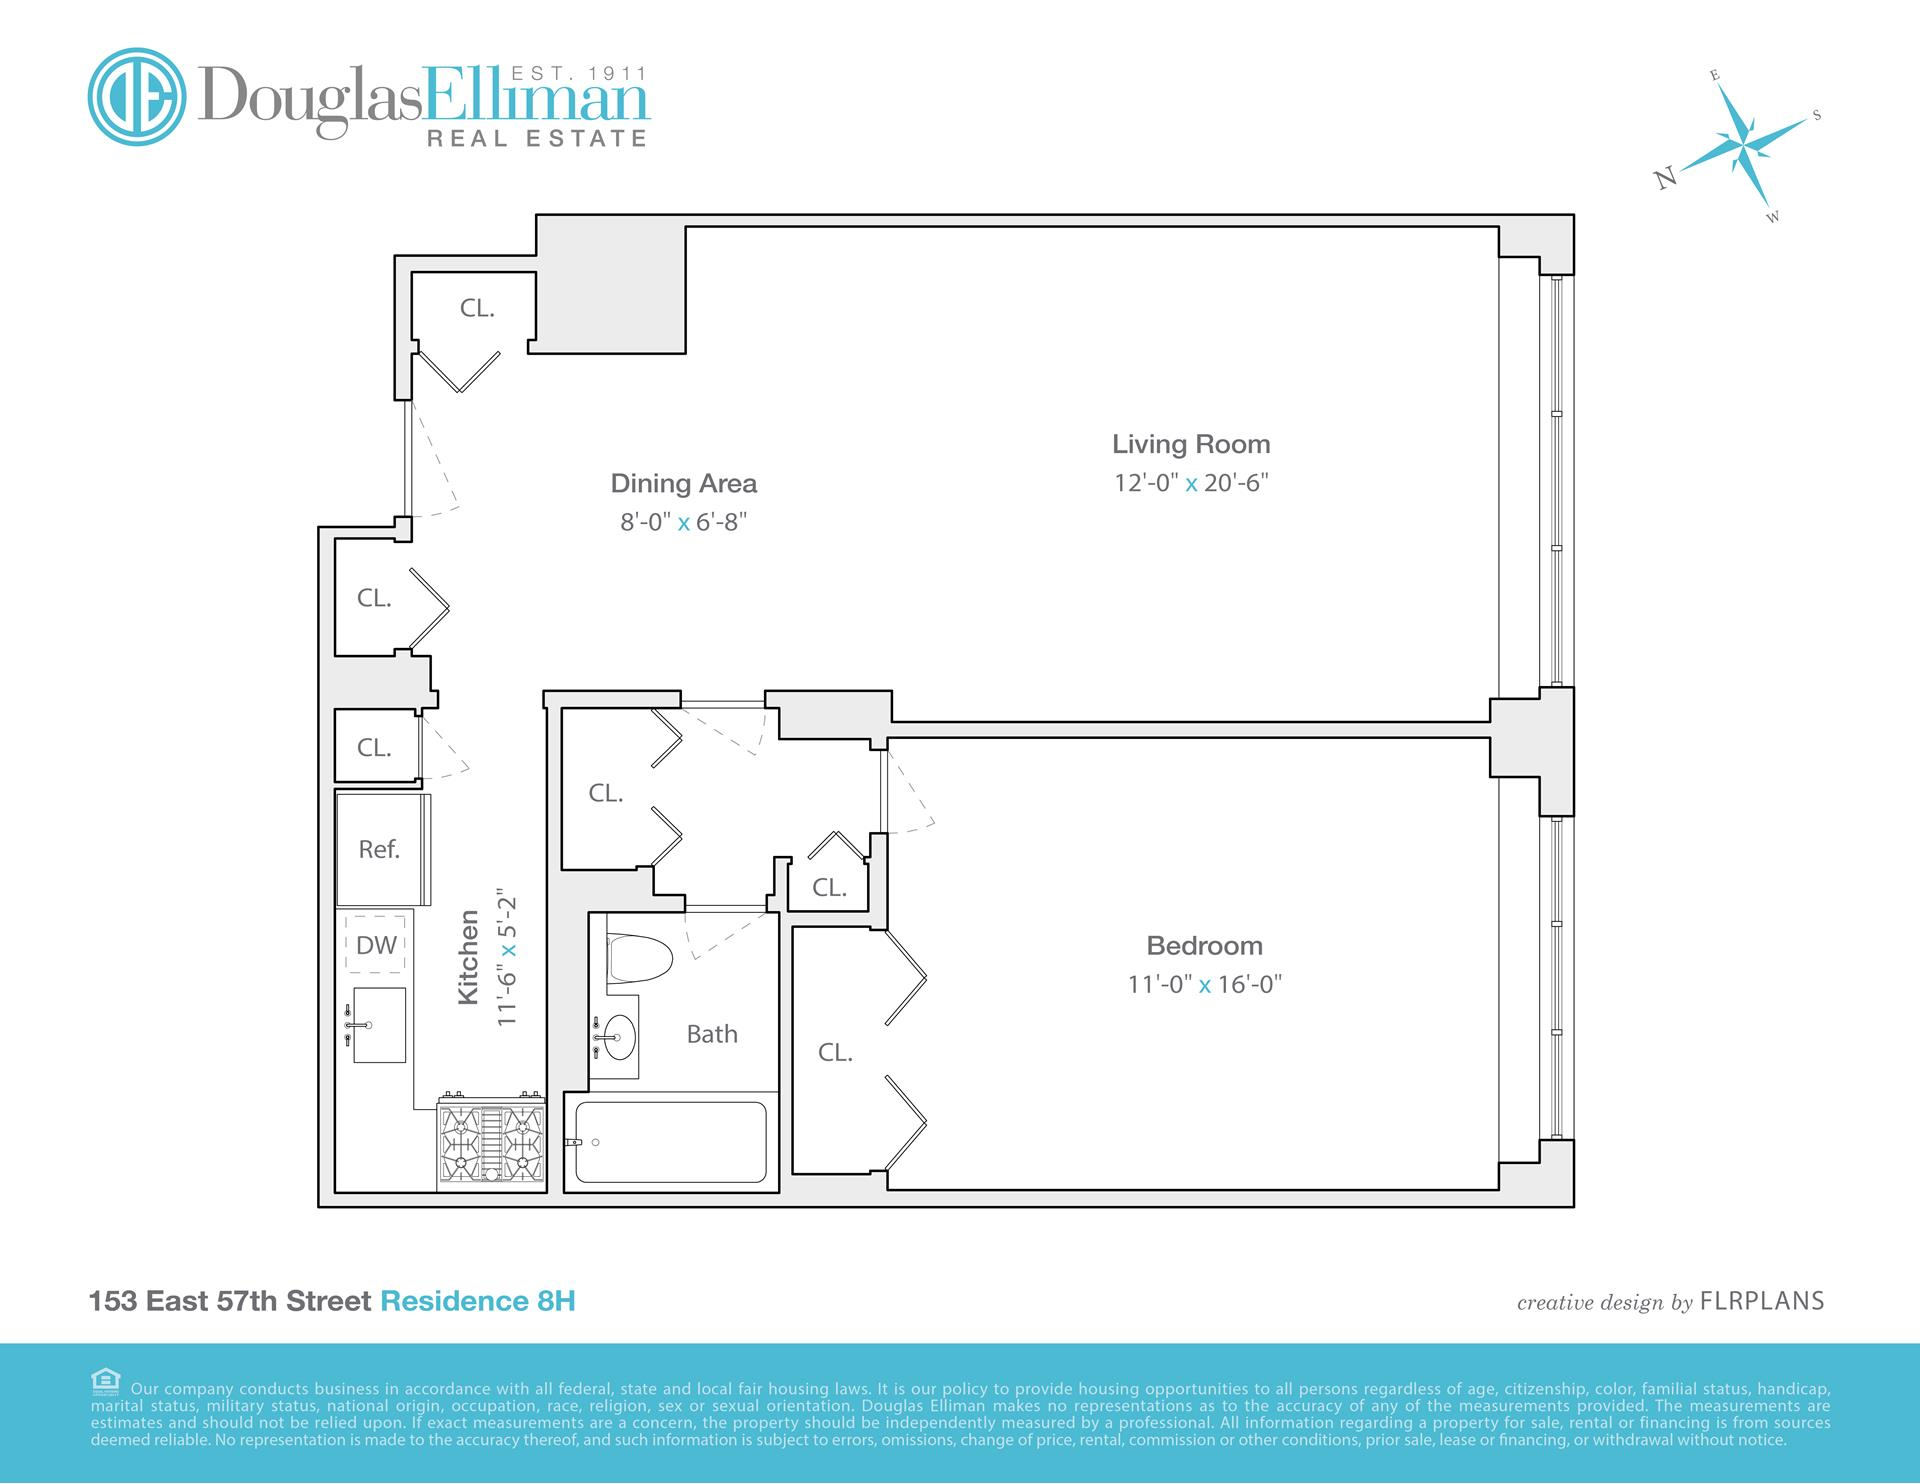 Floor plan of GOTHAM TOWNE HOUSE, 153 East 57th St, 8H - Midtown, New York